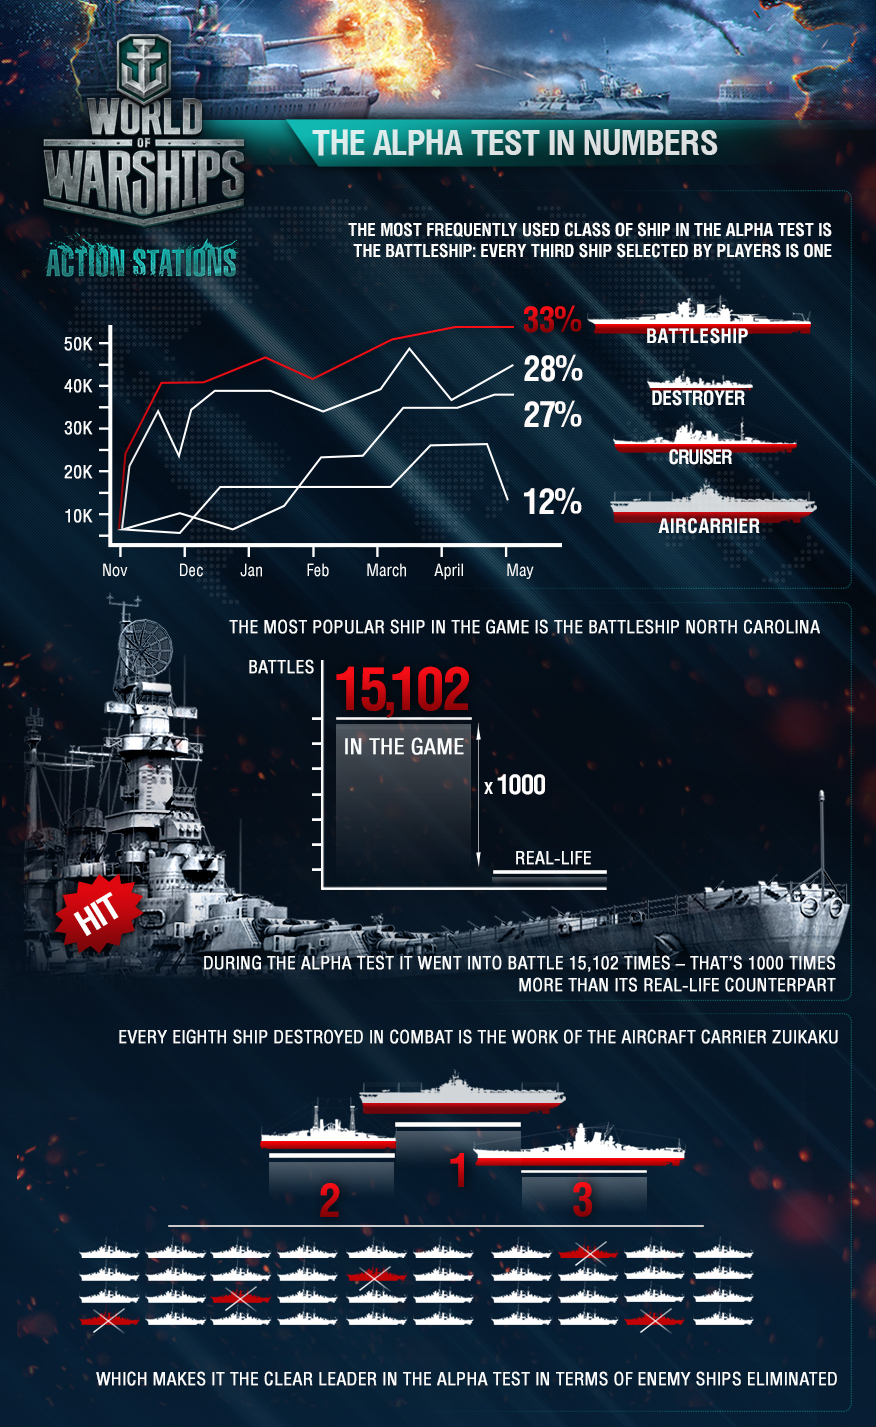 world-of-warships-hirek-0.jpg